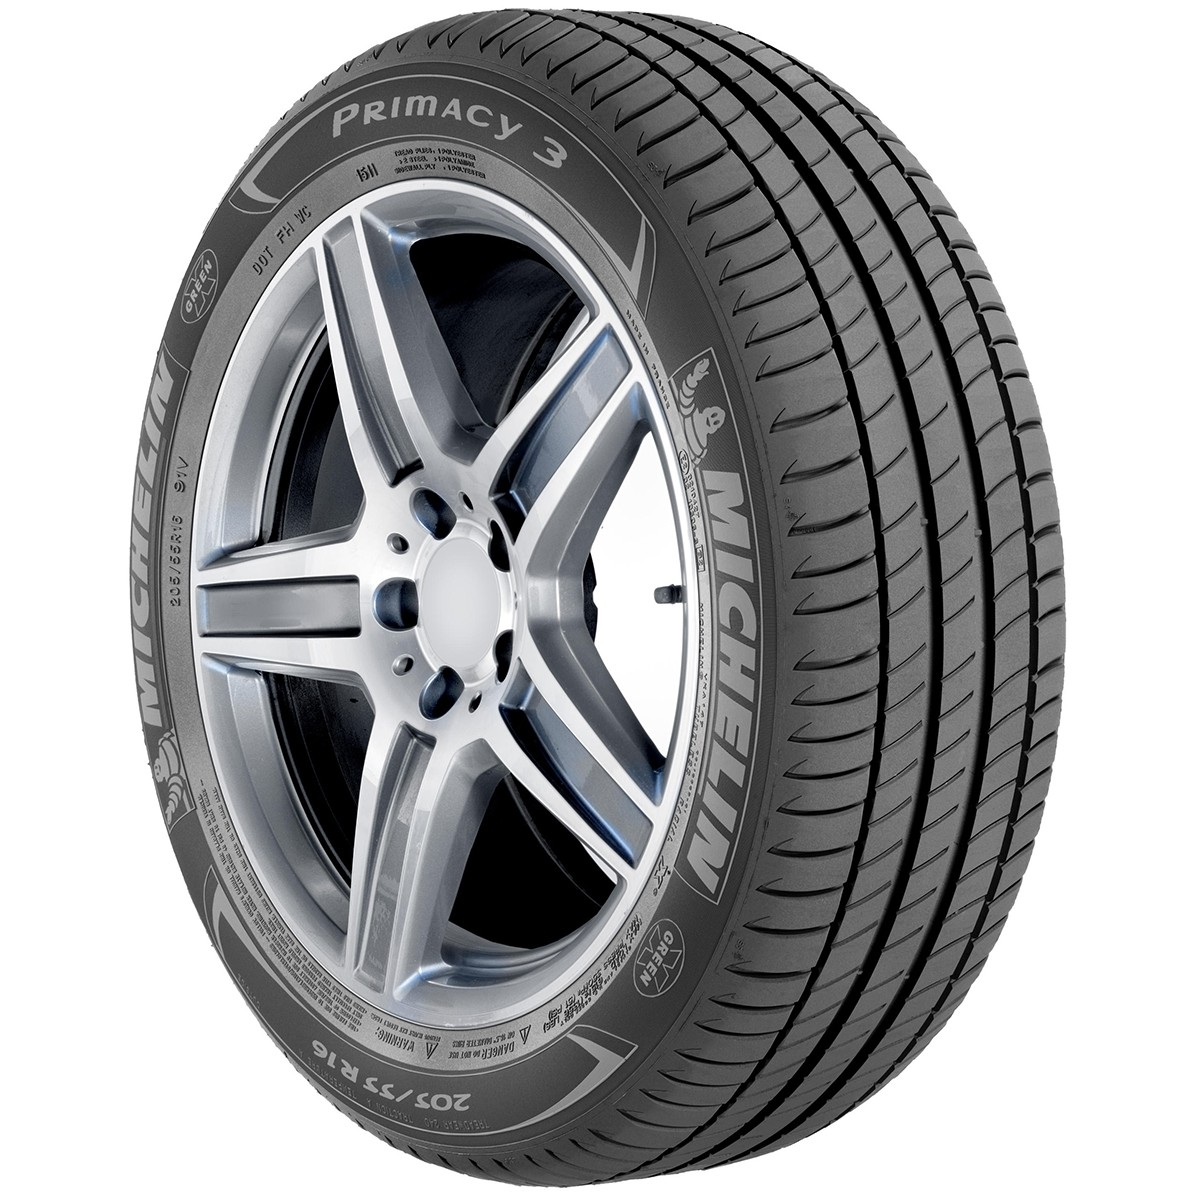 205/55 R16 [91] V PRIMACY 3 zp - MICHELIN